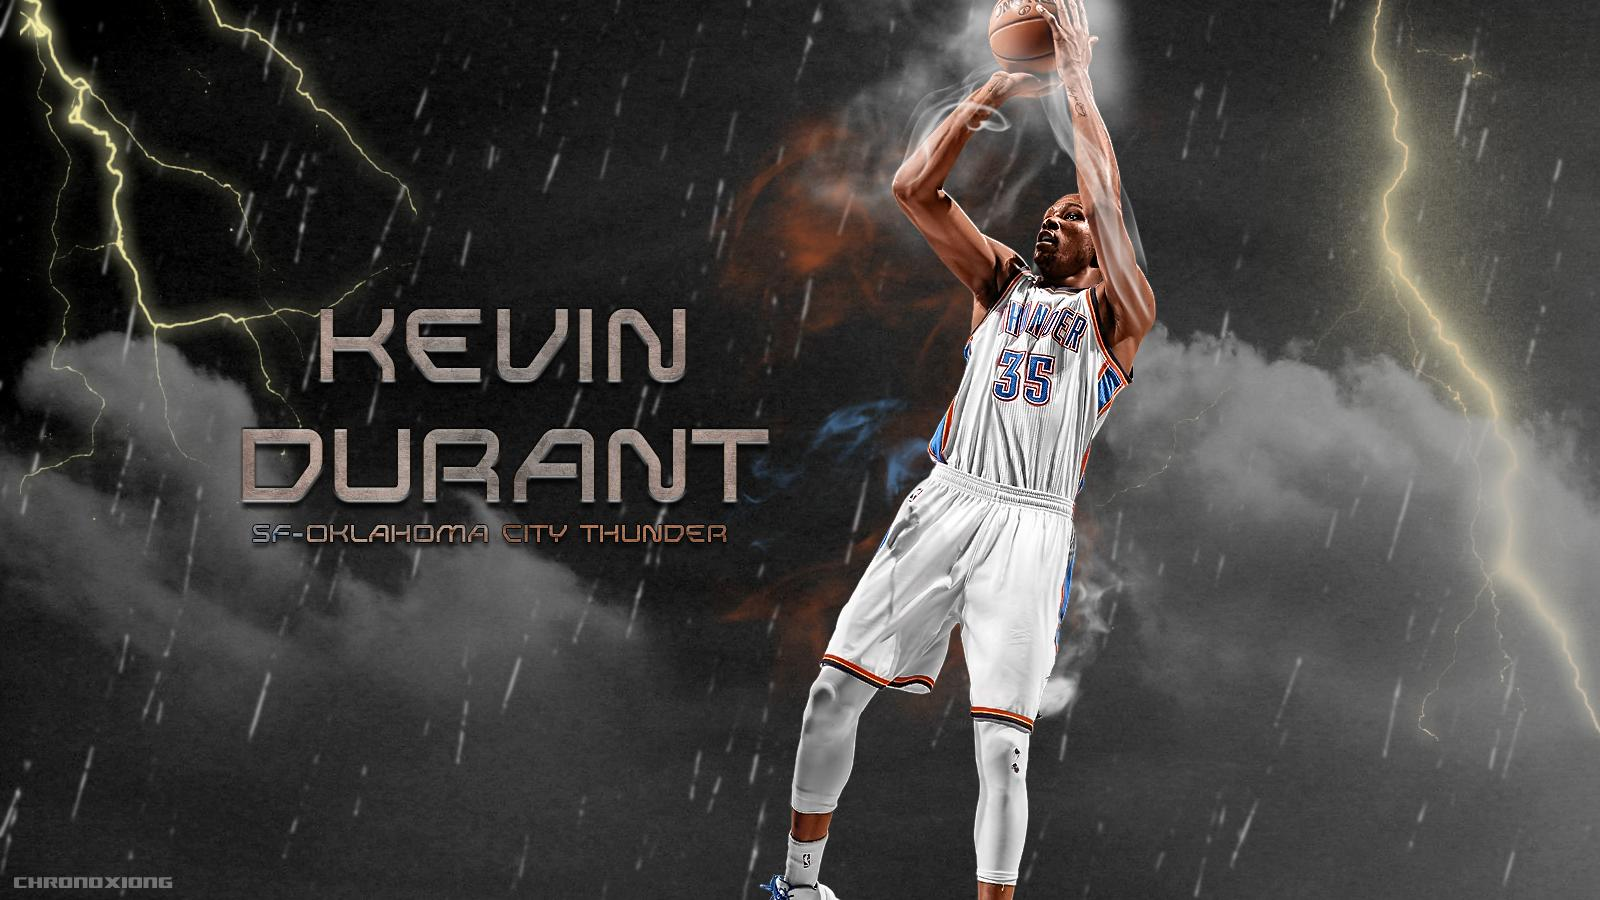 Kevin durant wallpaper   SF Wallpaper 1600x900